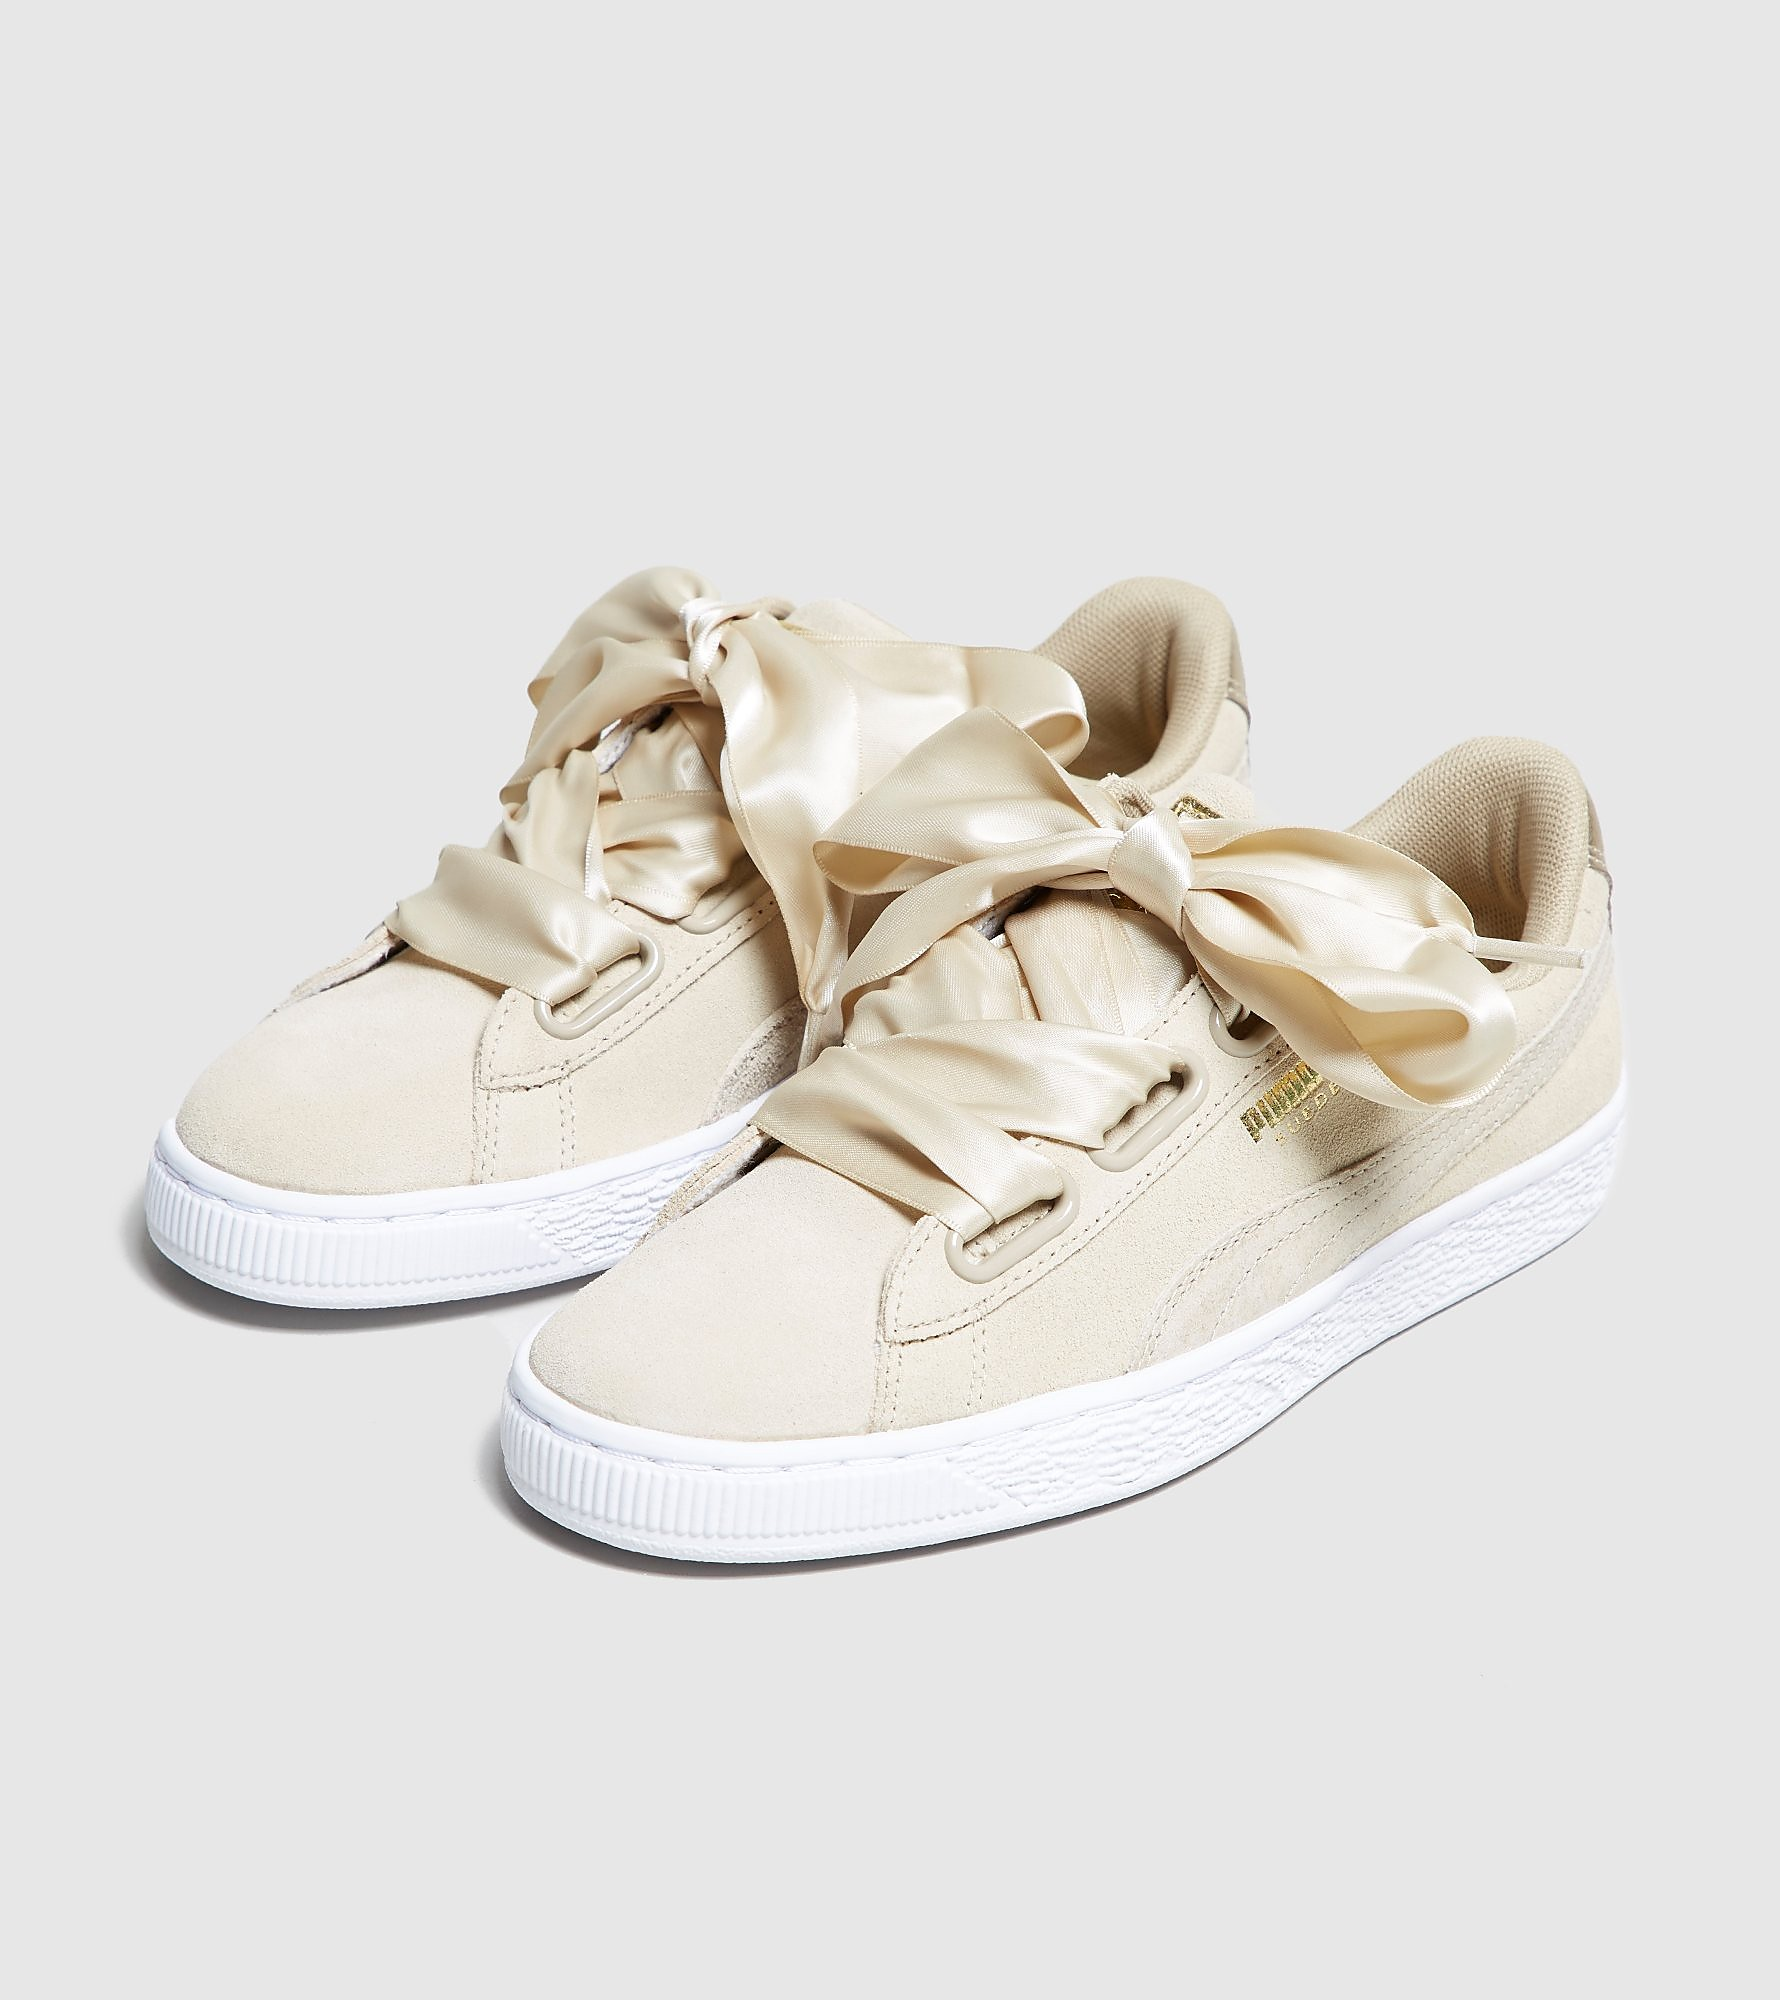 PUMA Suede Basket Heart Women's